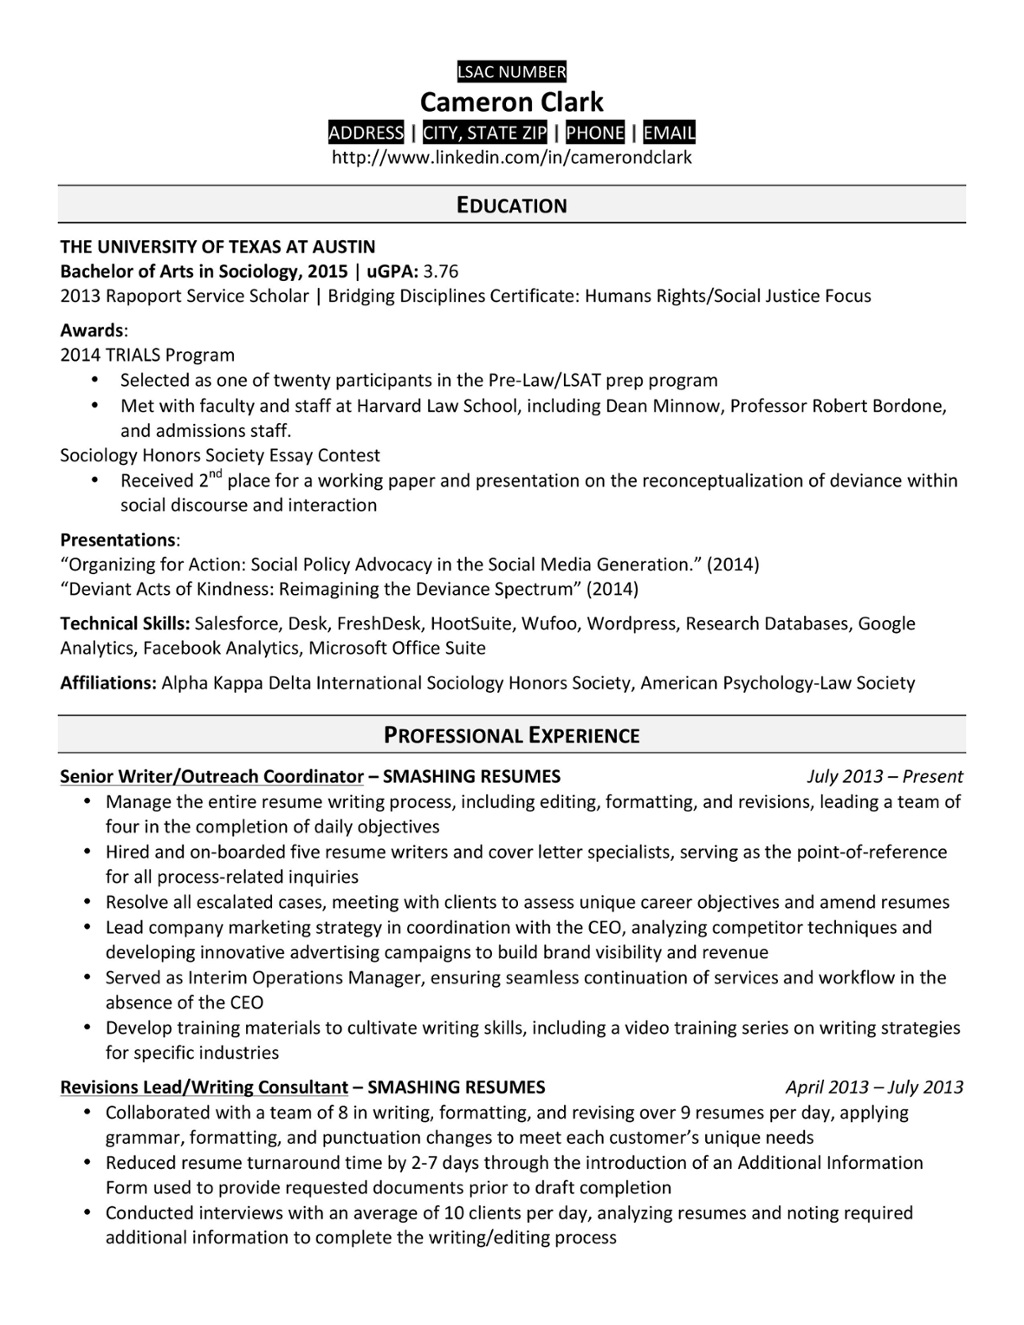 Law  Resume | A Law School Resume That Made The Cut Top Law Schools Us News